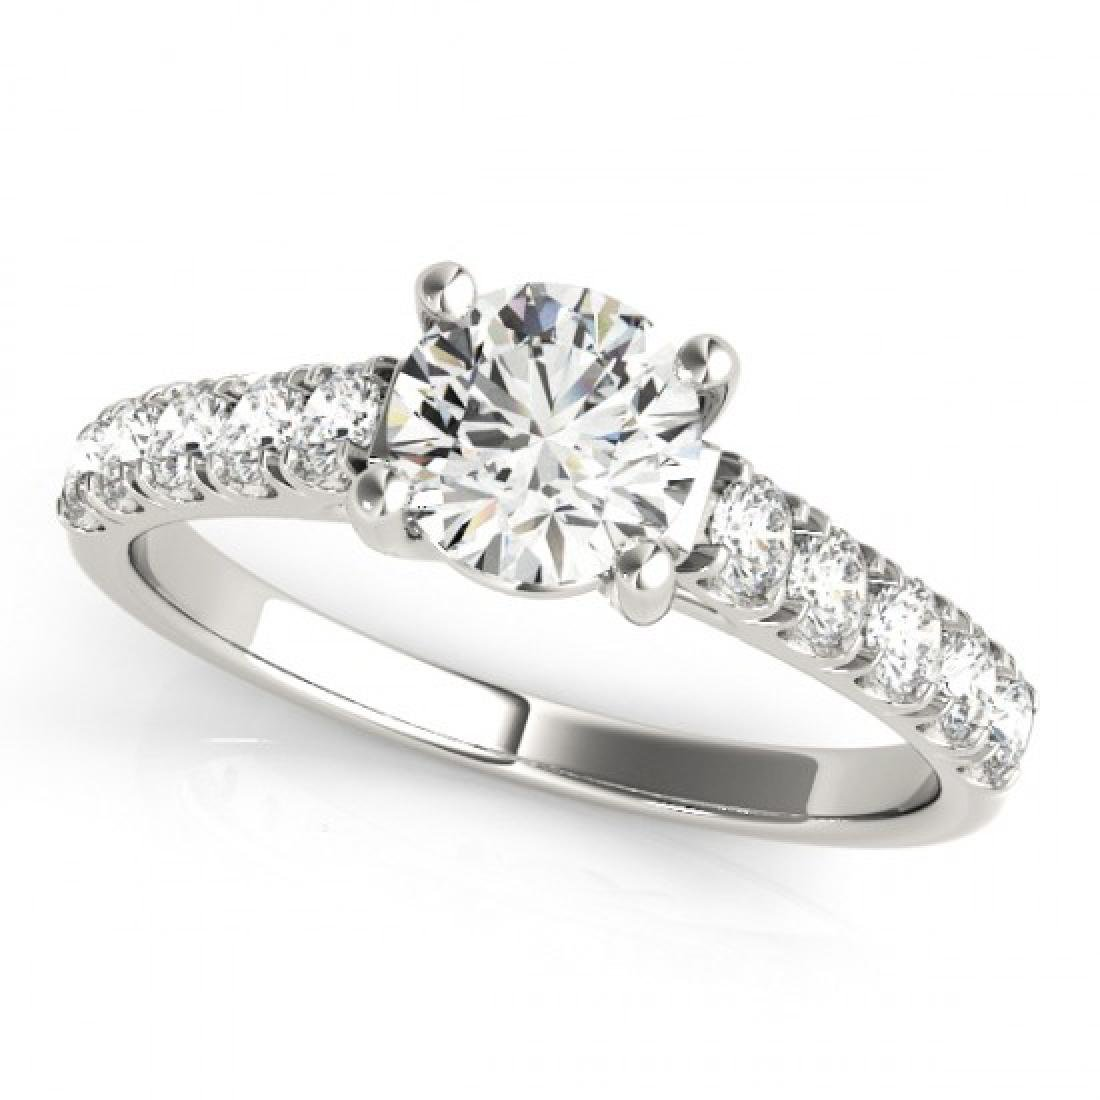 1.05 CTW Certified VS/SI Diamond Solitaire Ring 14K